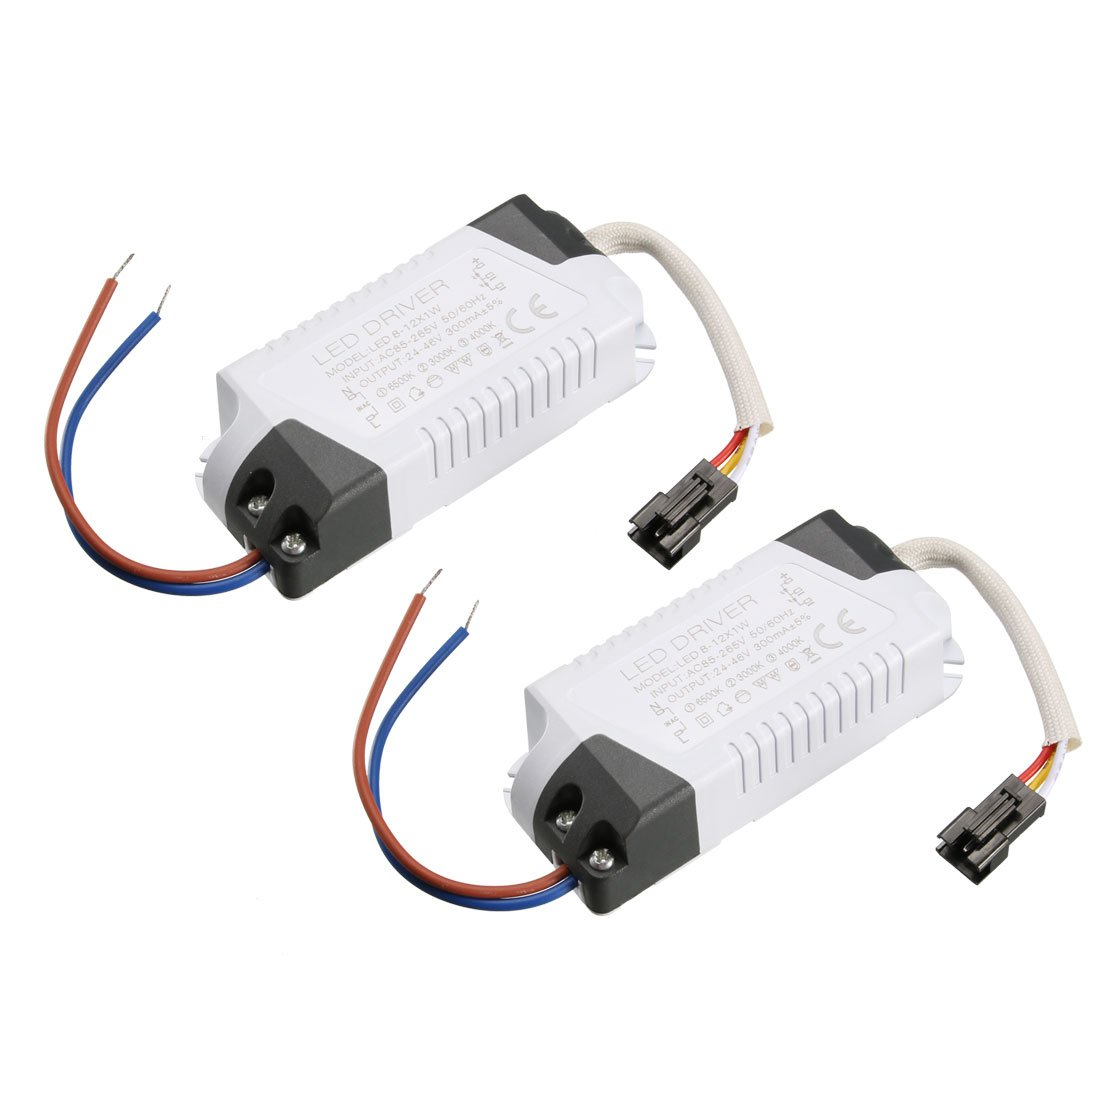 uxcell LED Driver 8-12W Constant Current 300mA High Power AC 85-265V Output 24-46V External Power Supply LED Ceiling Lamp Rectifier Transformer 2Pcs